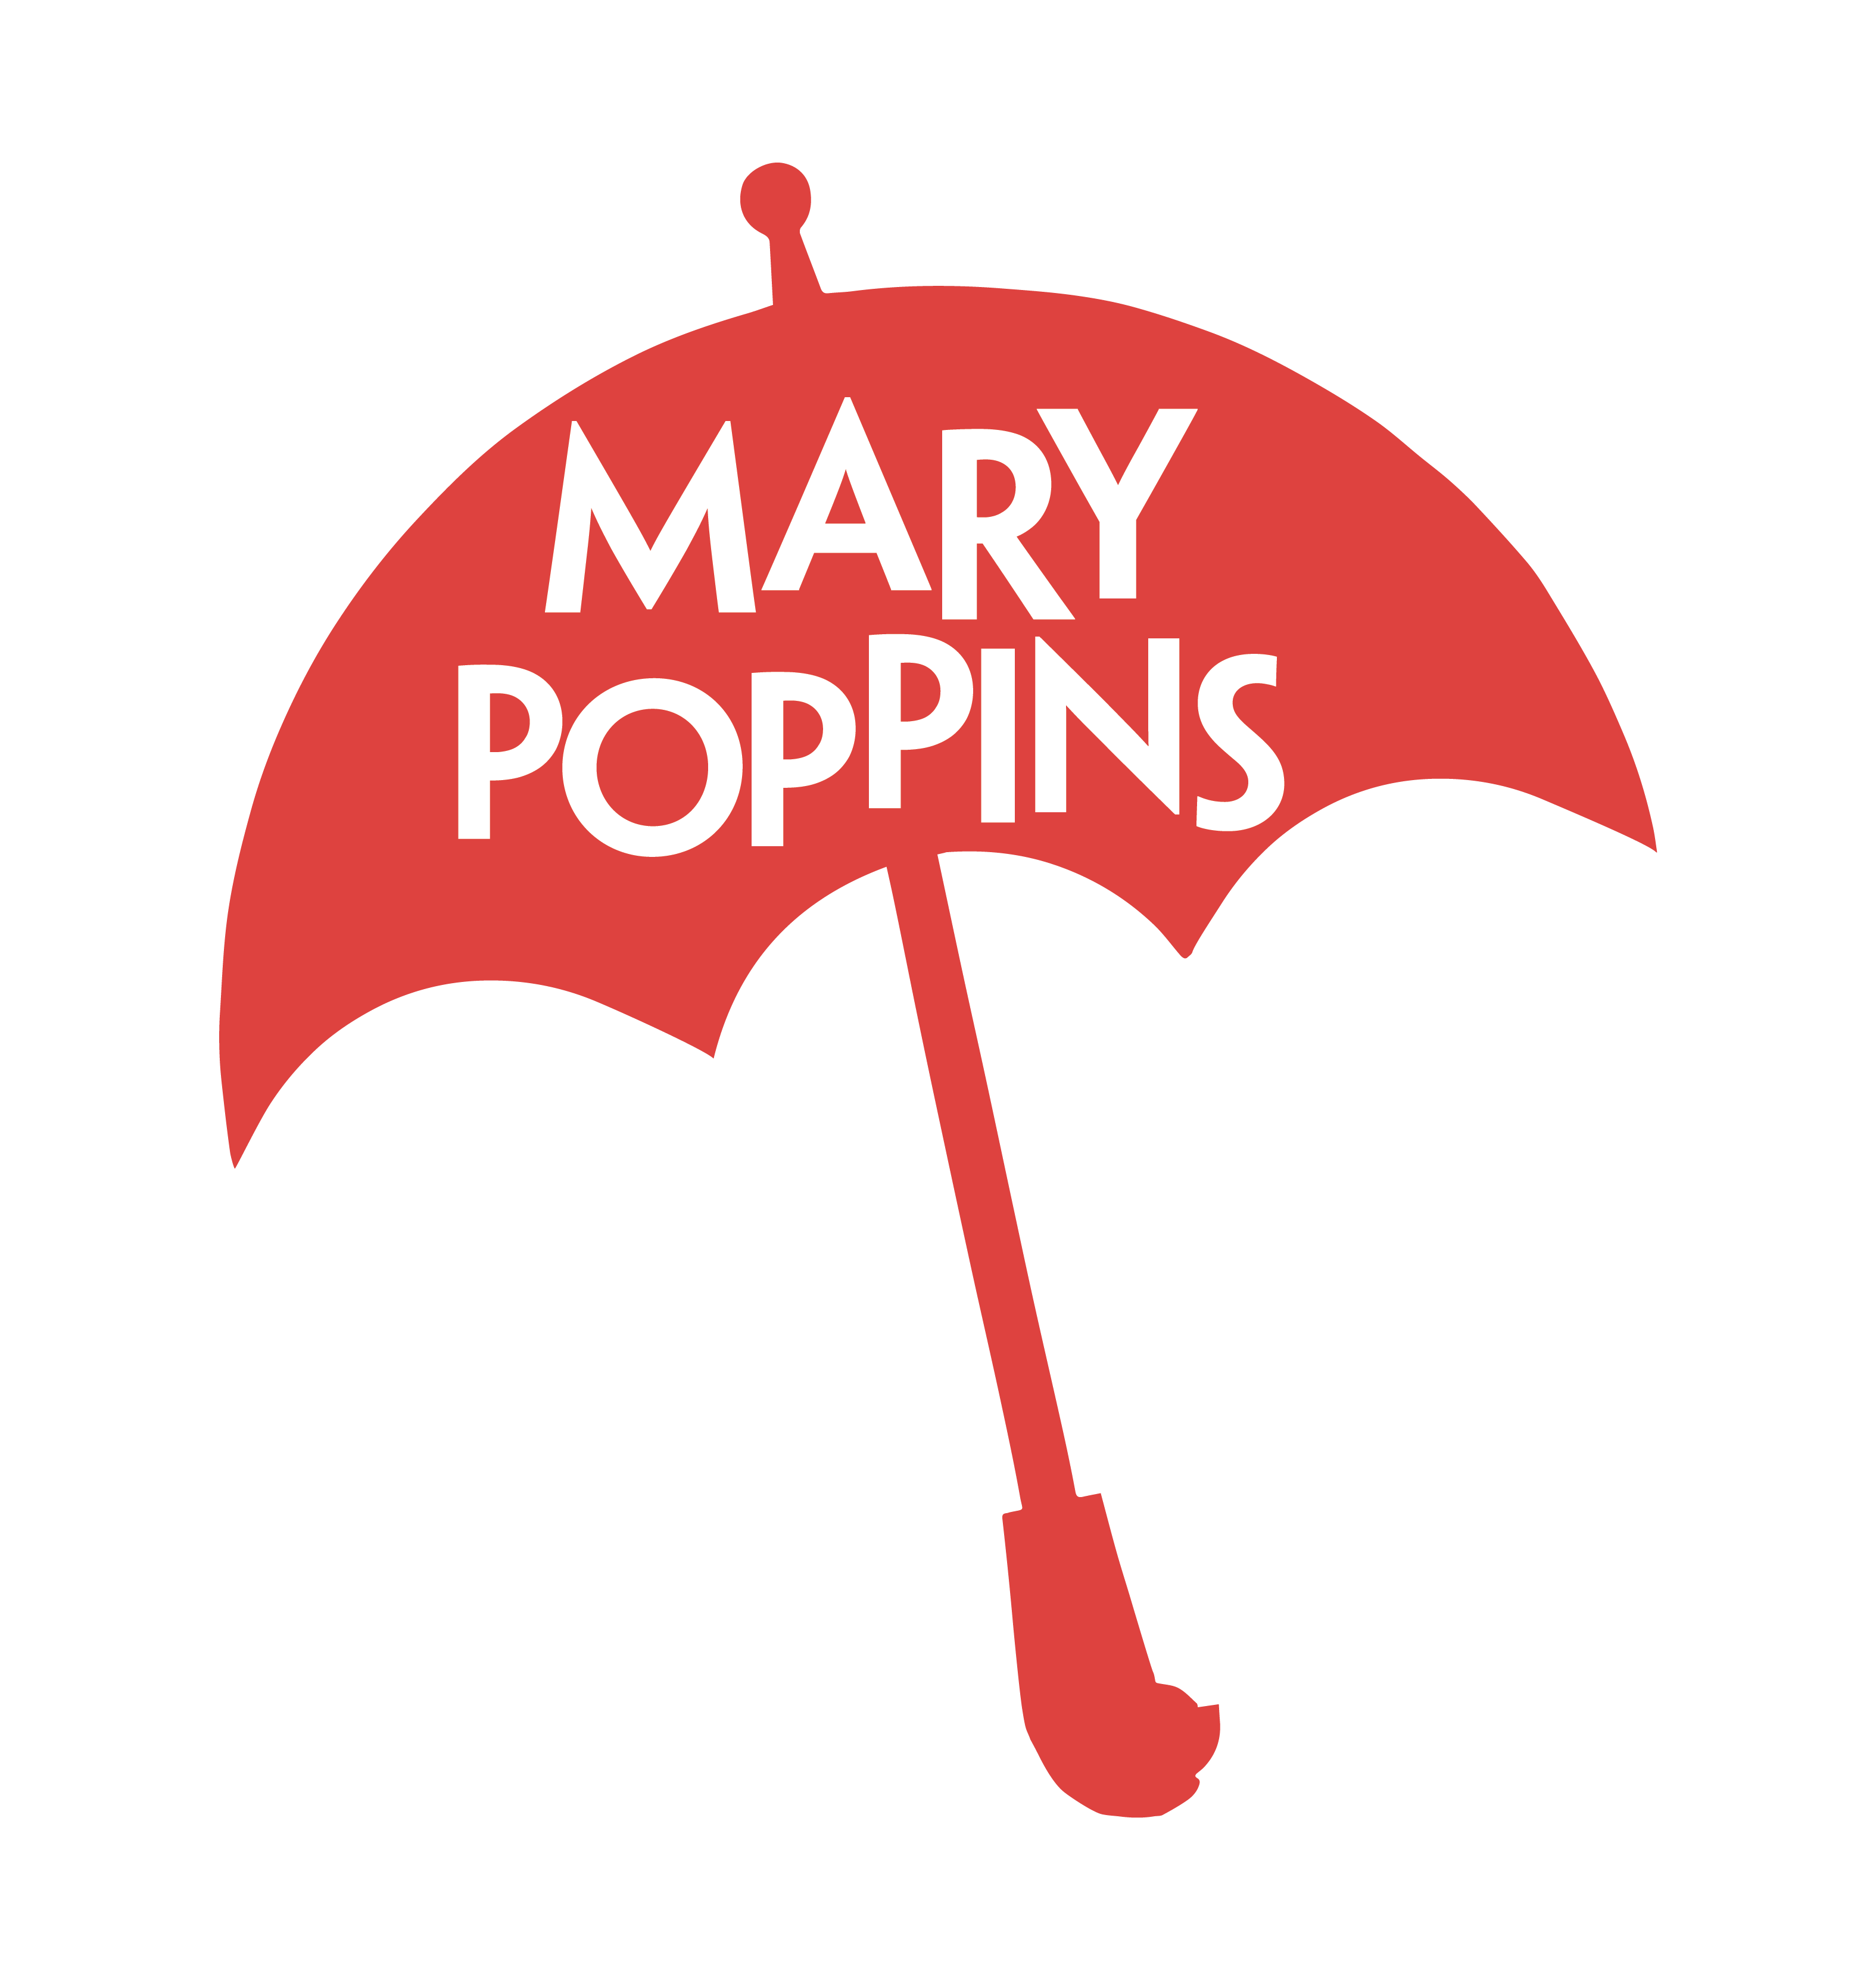 Musical Theatre Png - Mary Poppins Musical theatre Broadway theatre ...